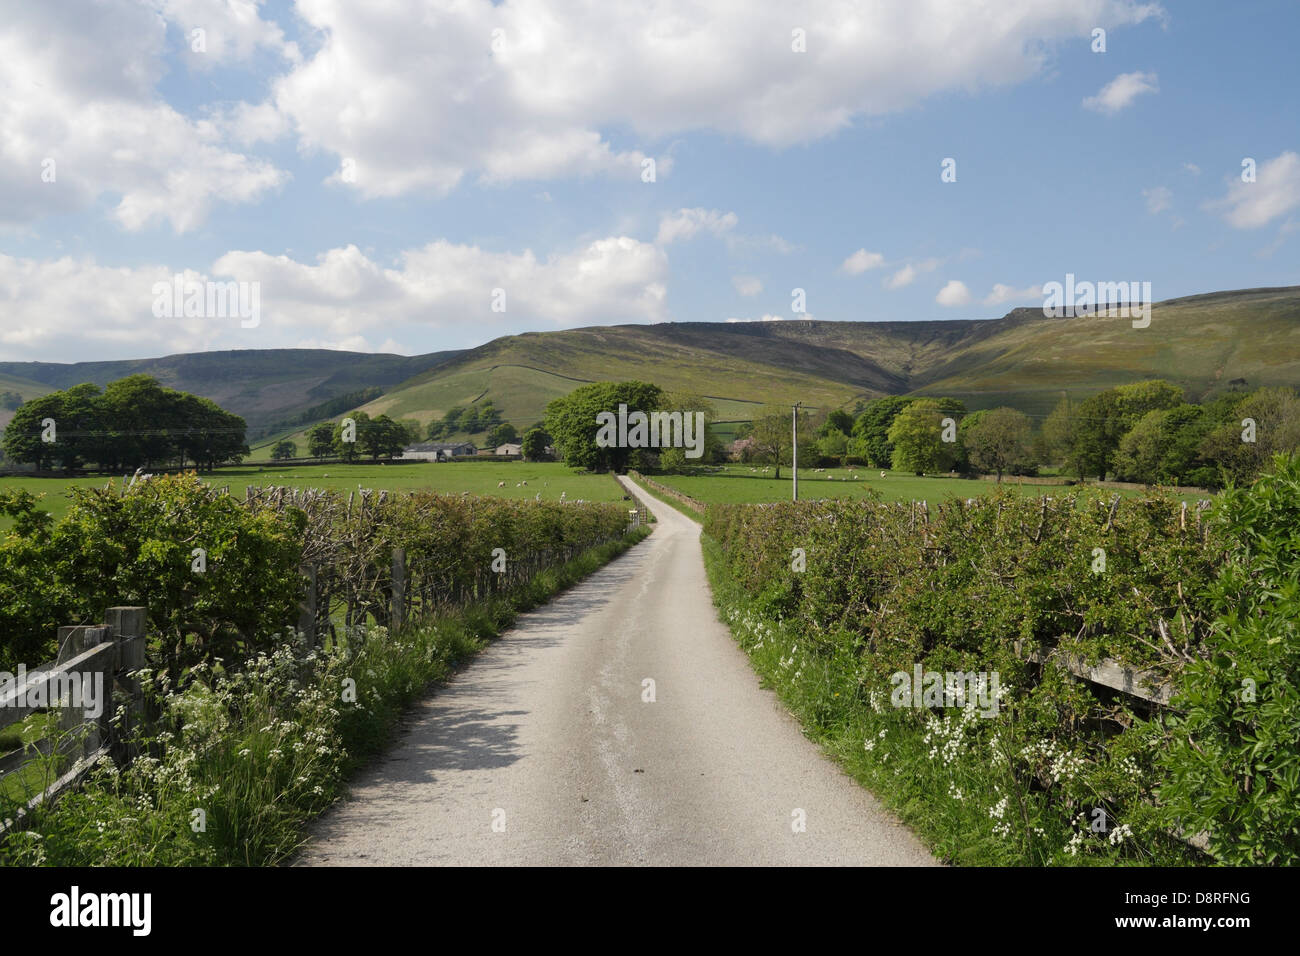 Road leading to Ollerbrook Booth, village of Edale in the Peak District - Stock Image